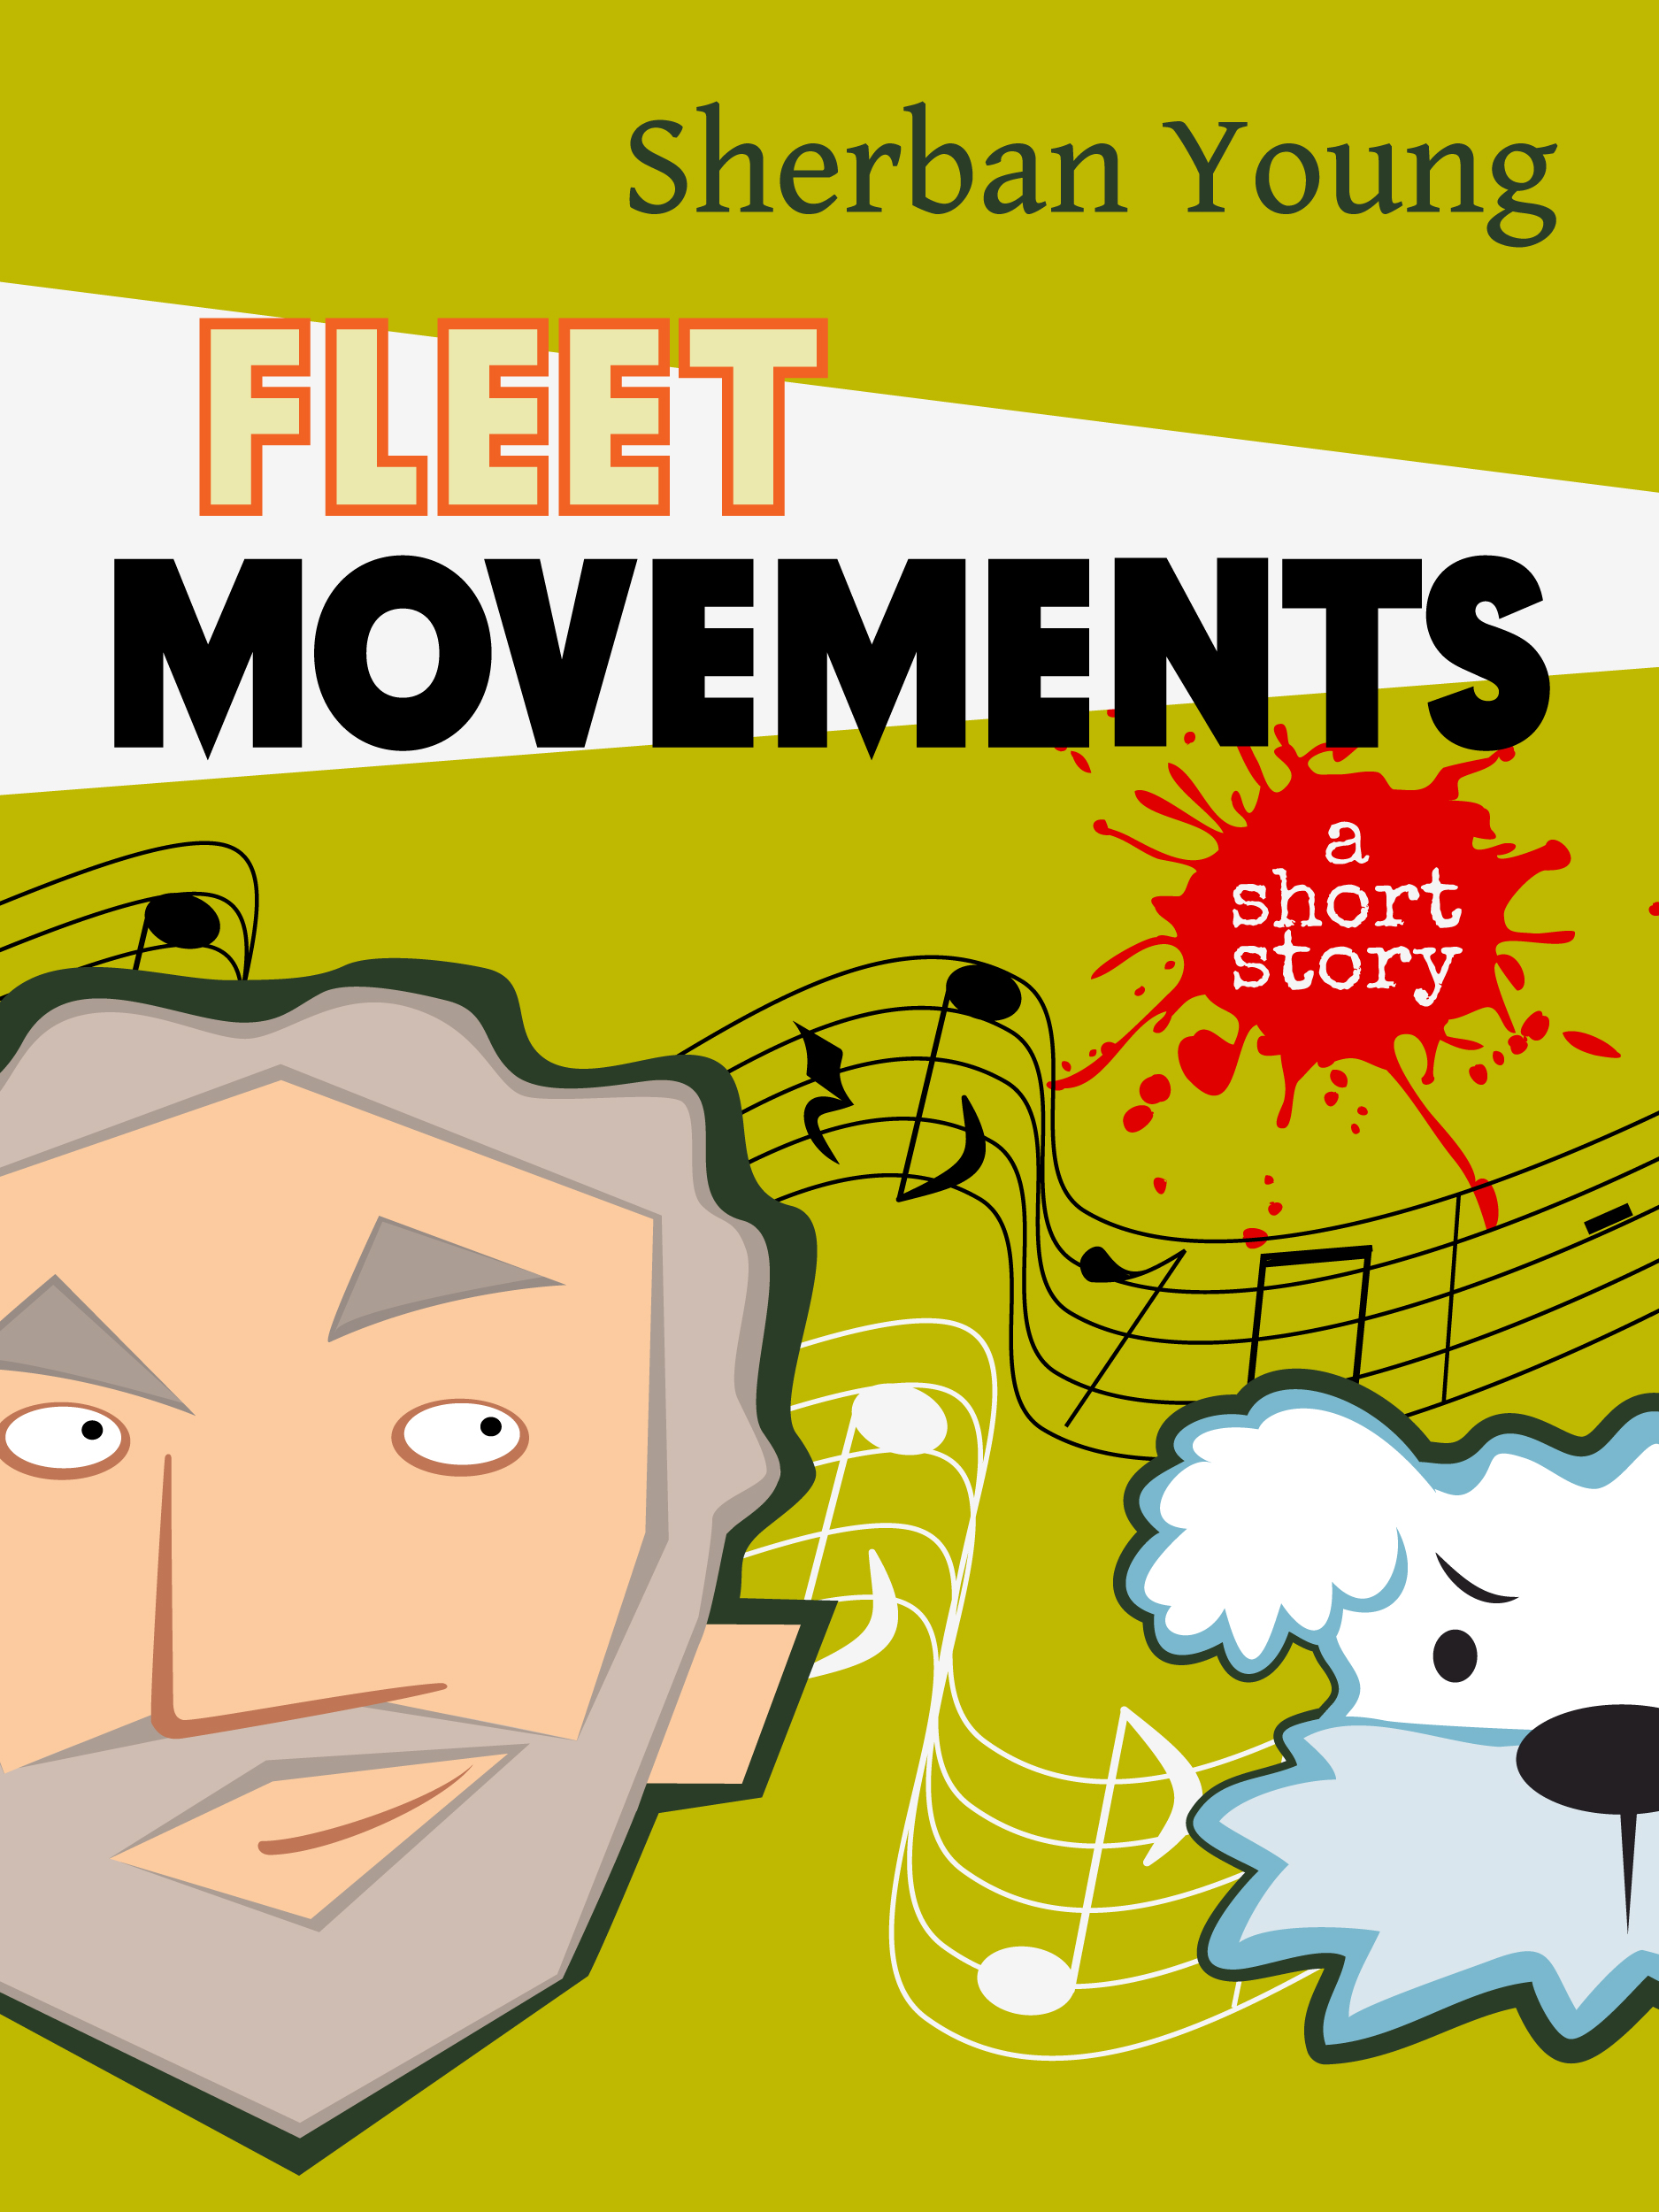 Movements-Cover.jpg